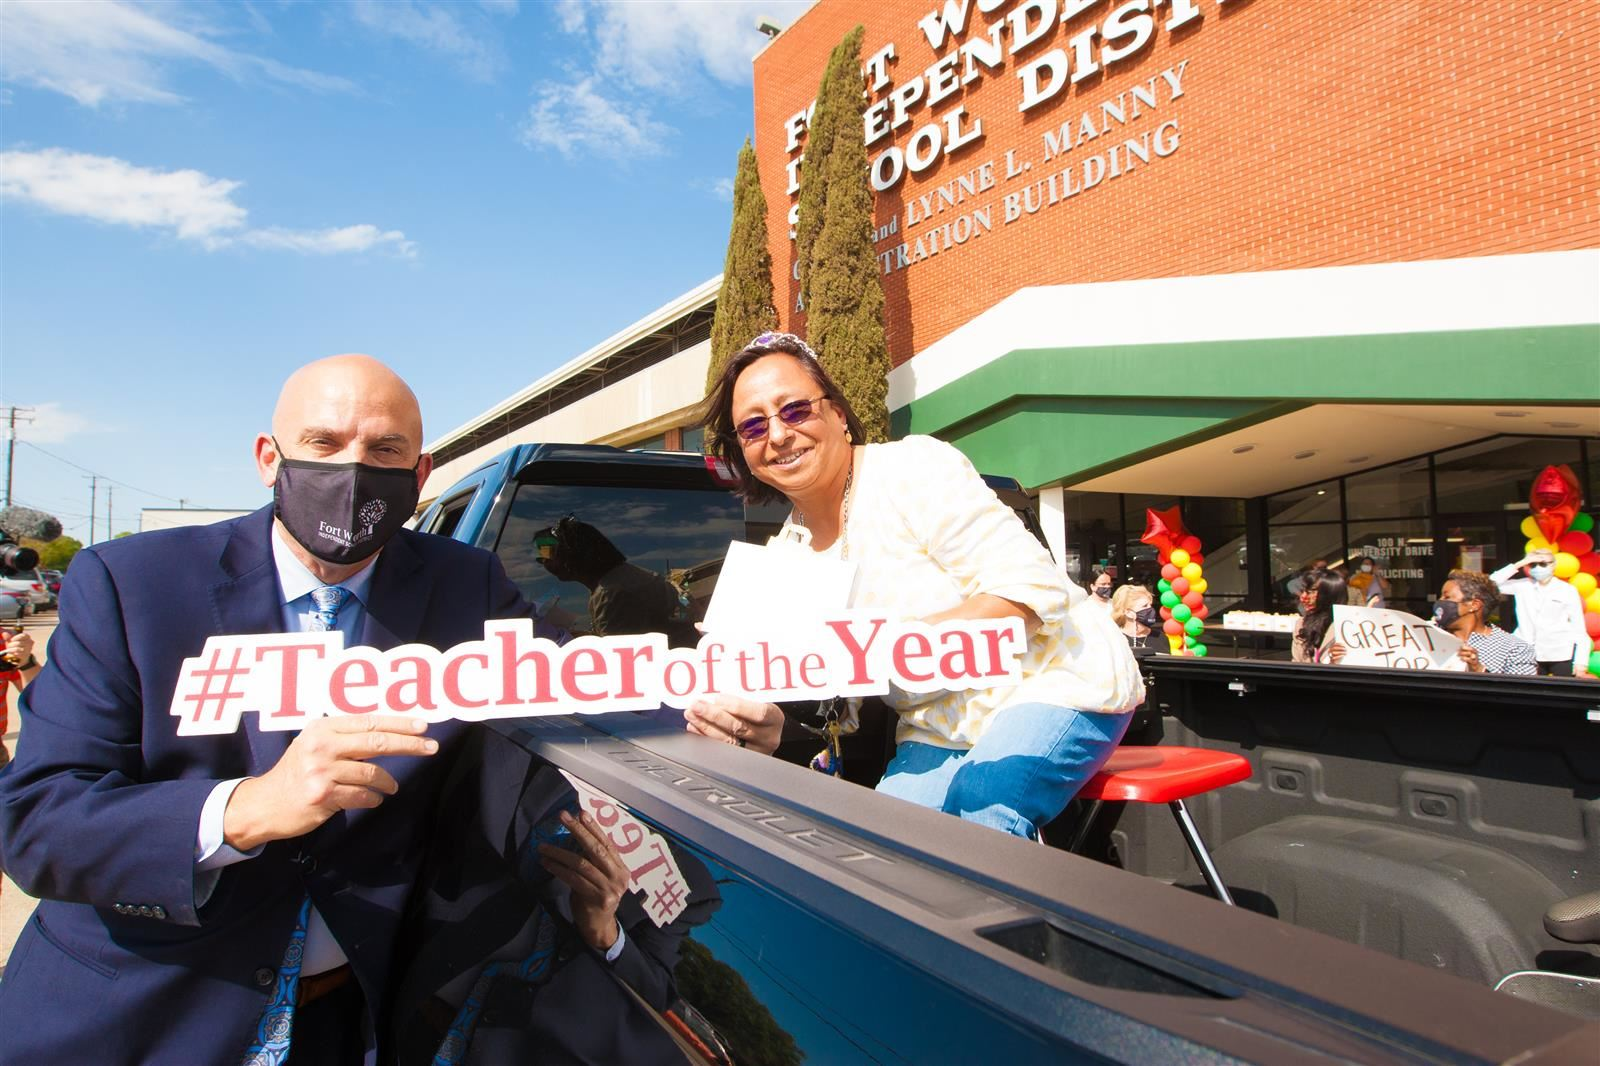 Campus Teacher of the Year Drive-Through Celebration, April 8, 2021